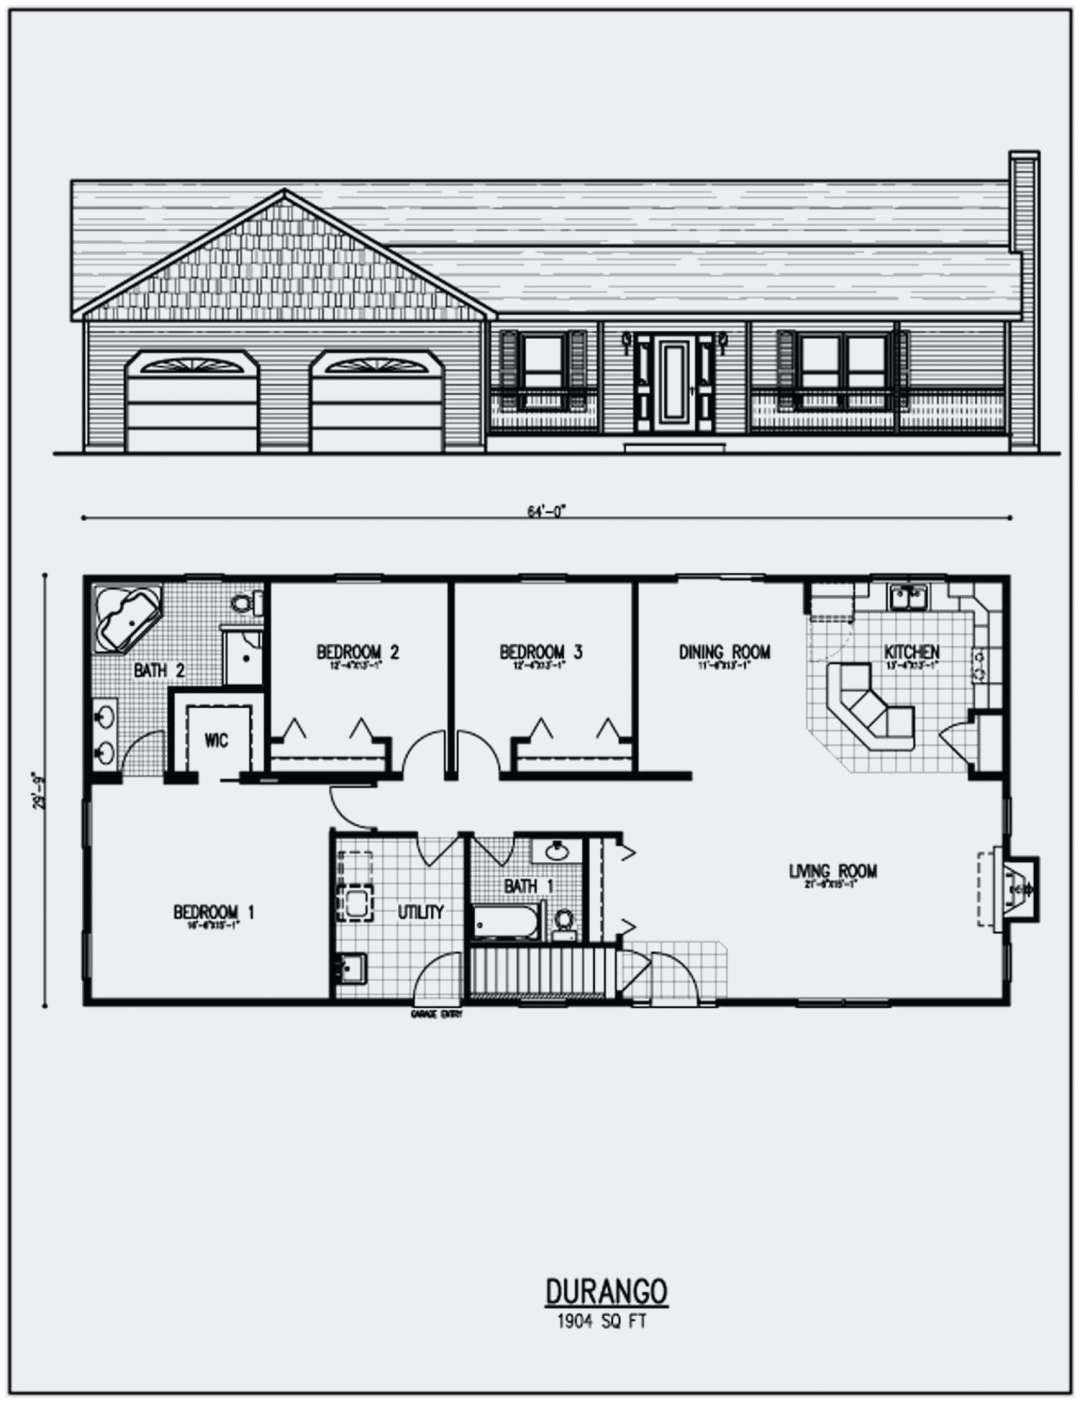 small house design sri lanka bud house plans low two story in sri lanka kerala style inspirational house plans with estimated cost to build inspirational bud house for excellent small house